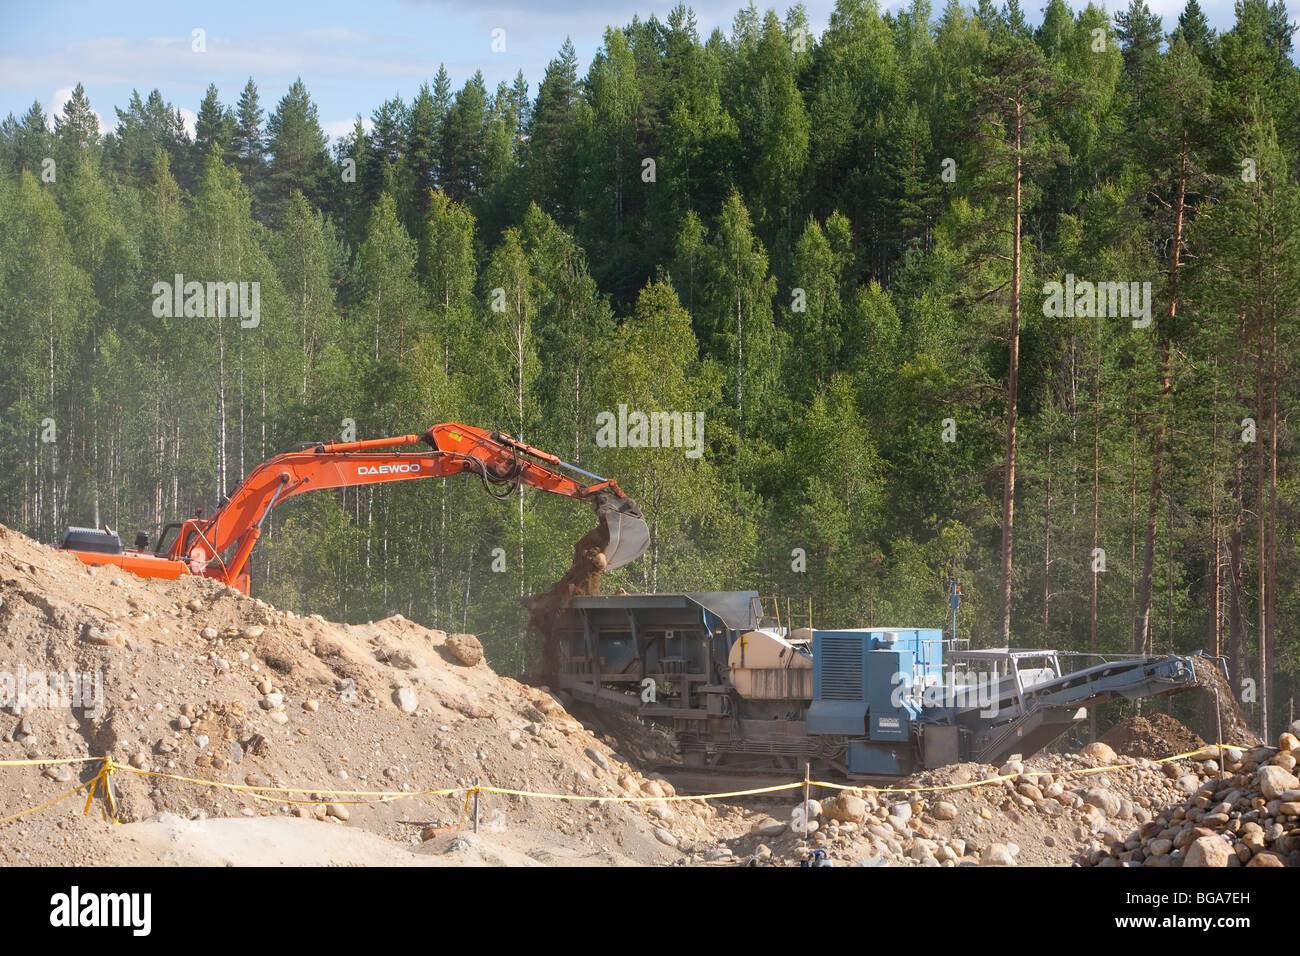 Digger loading sand and stones to the crusher / separator machine in a gravel pit , Finland - Stock Image